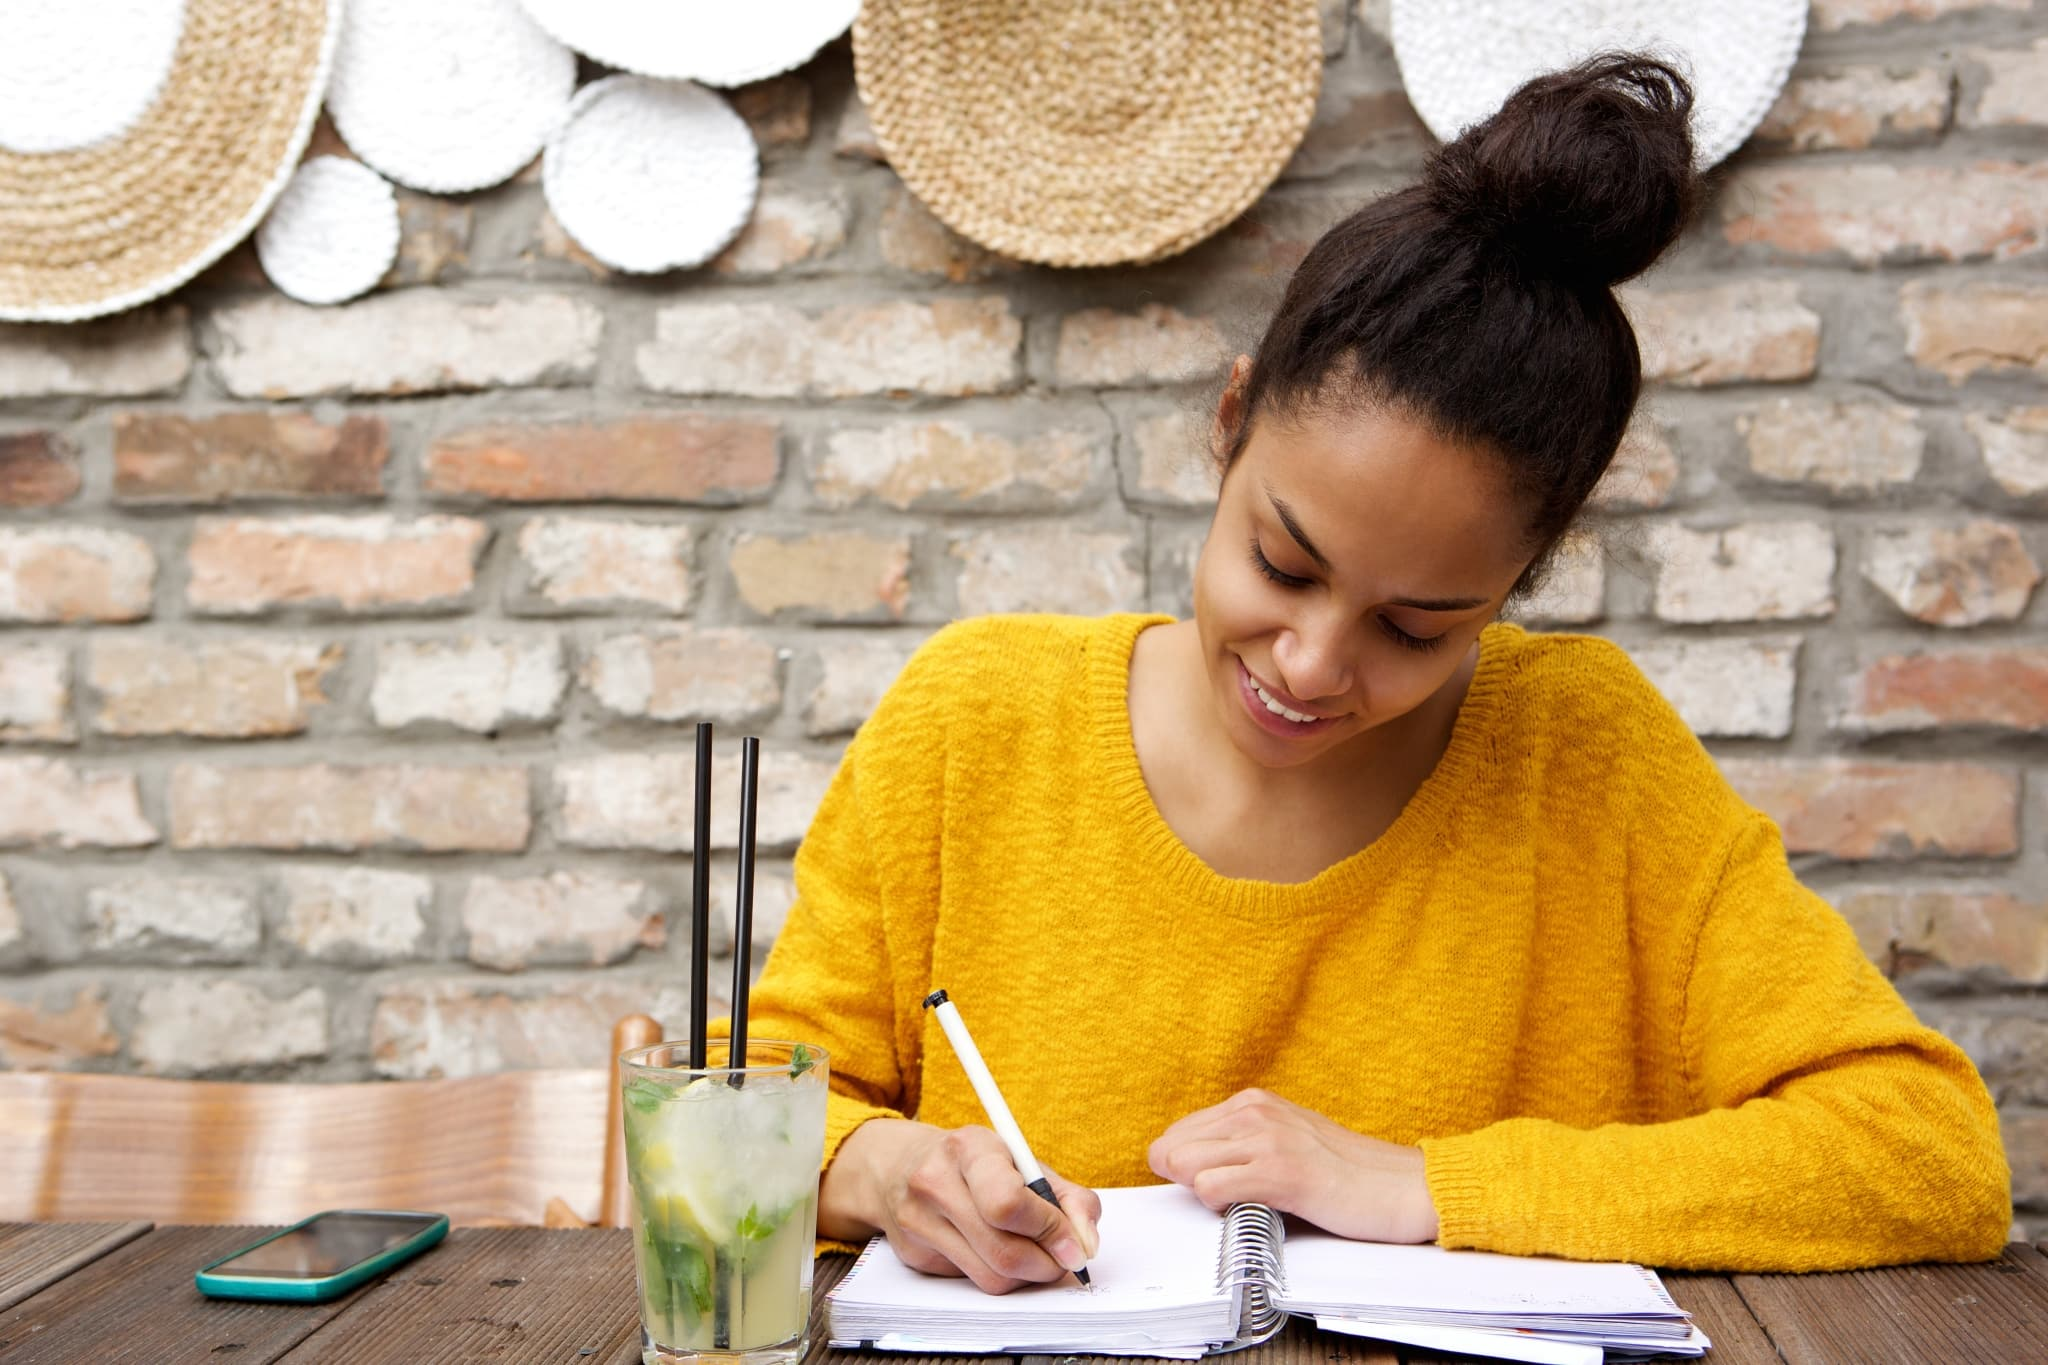 IWD-beautiful-young-black-woman-writing-notes-at-cafe-PJ93C3Q-scaled.jpg